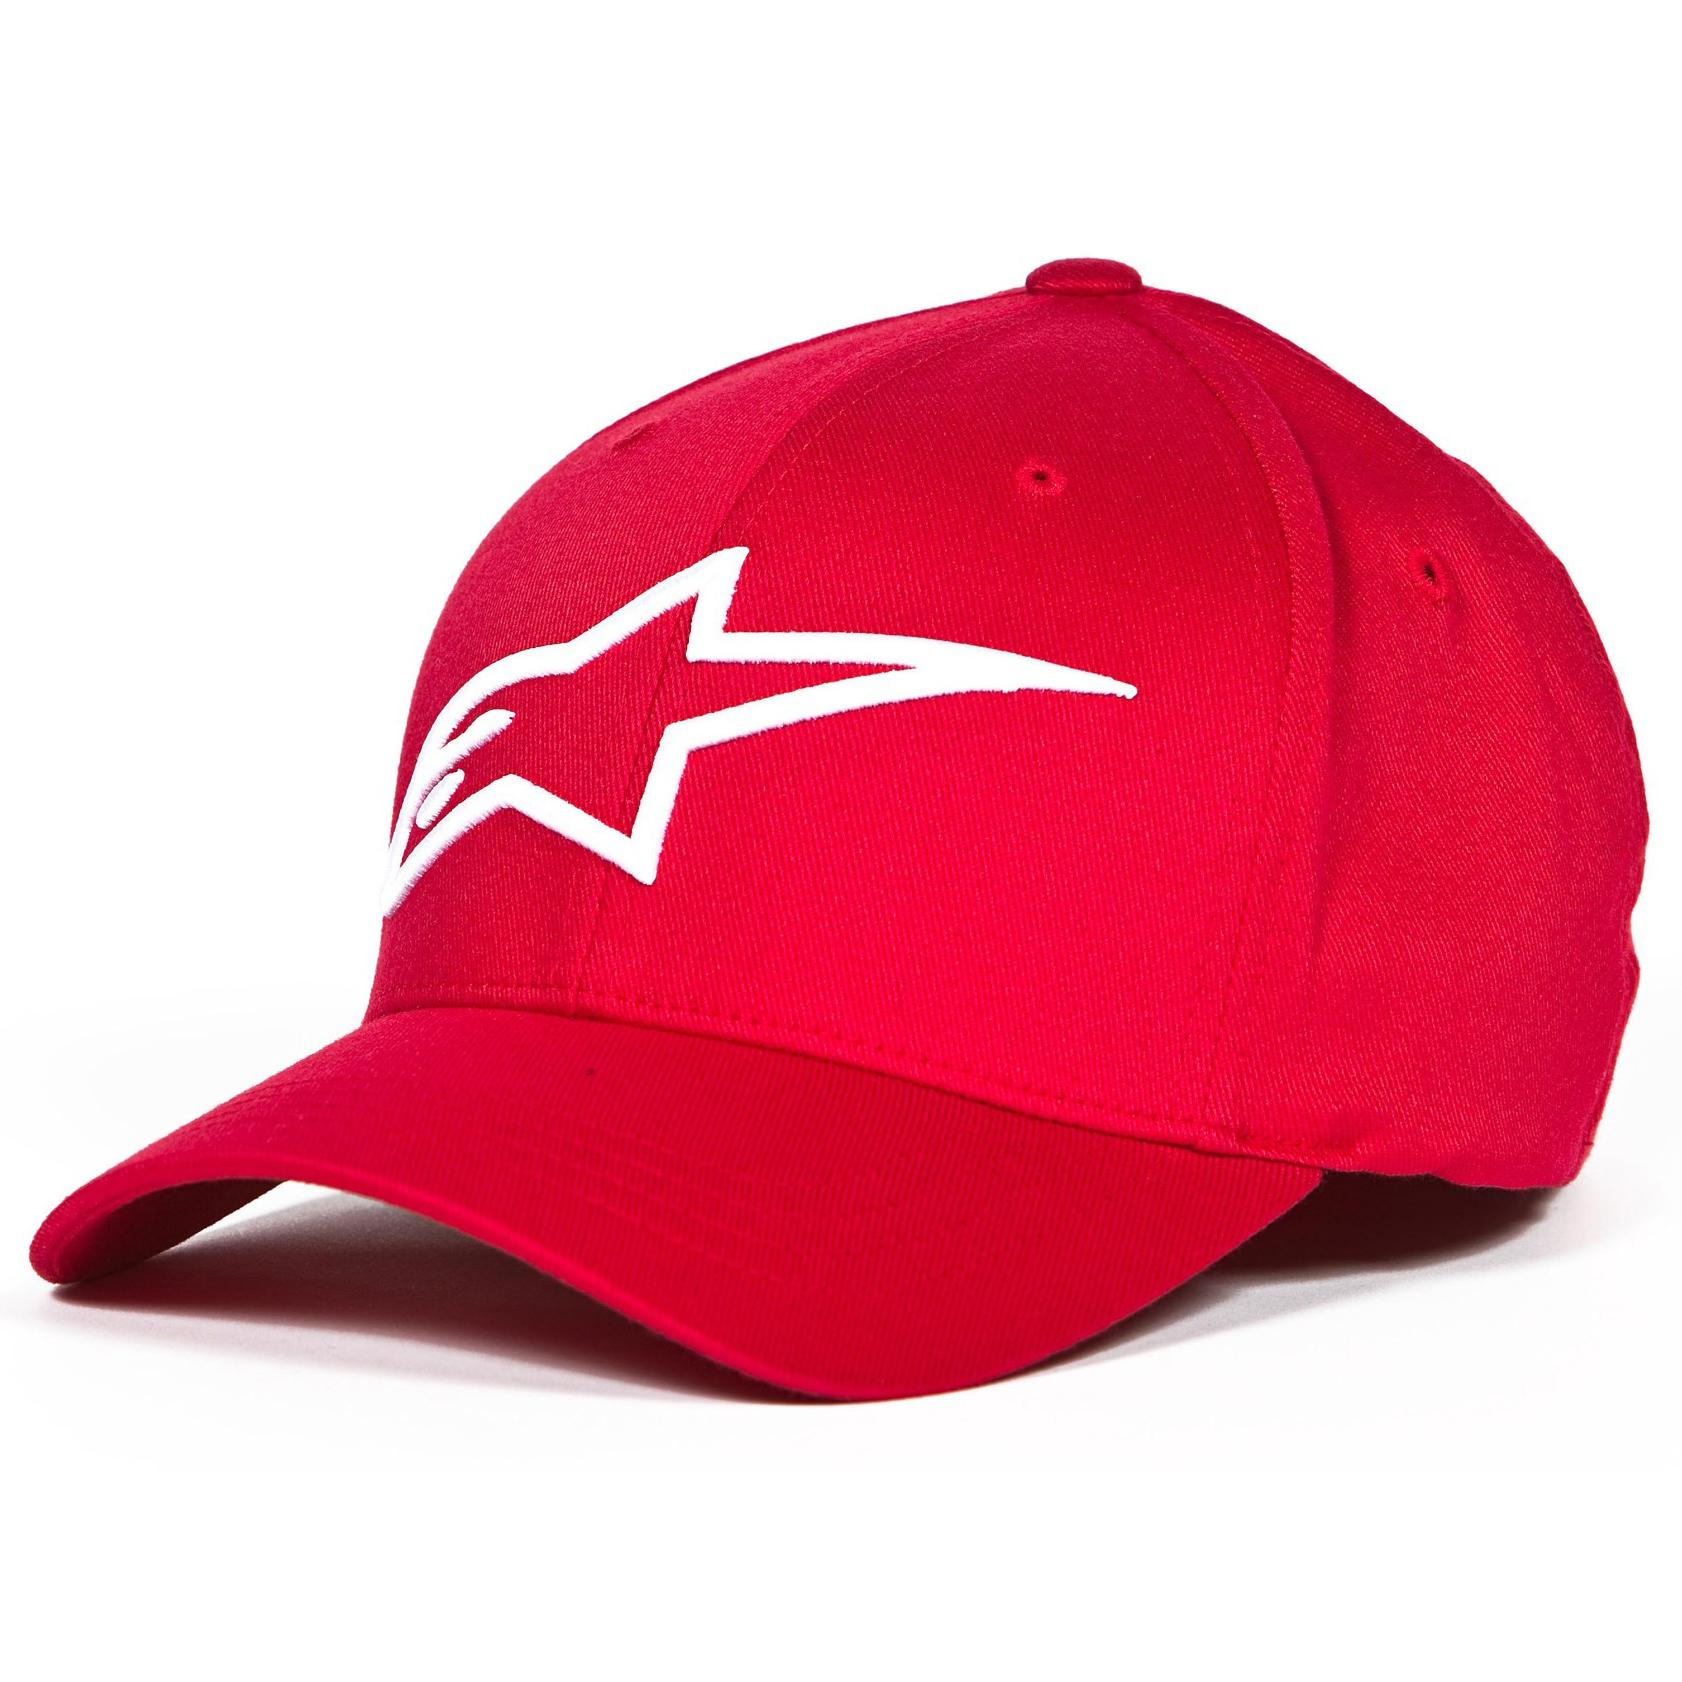 alpinestars astar hat and other casualwear from merlin